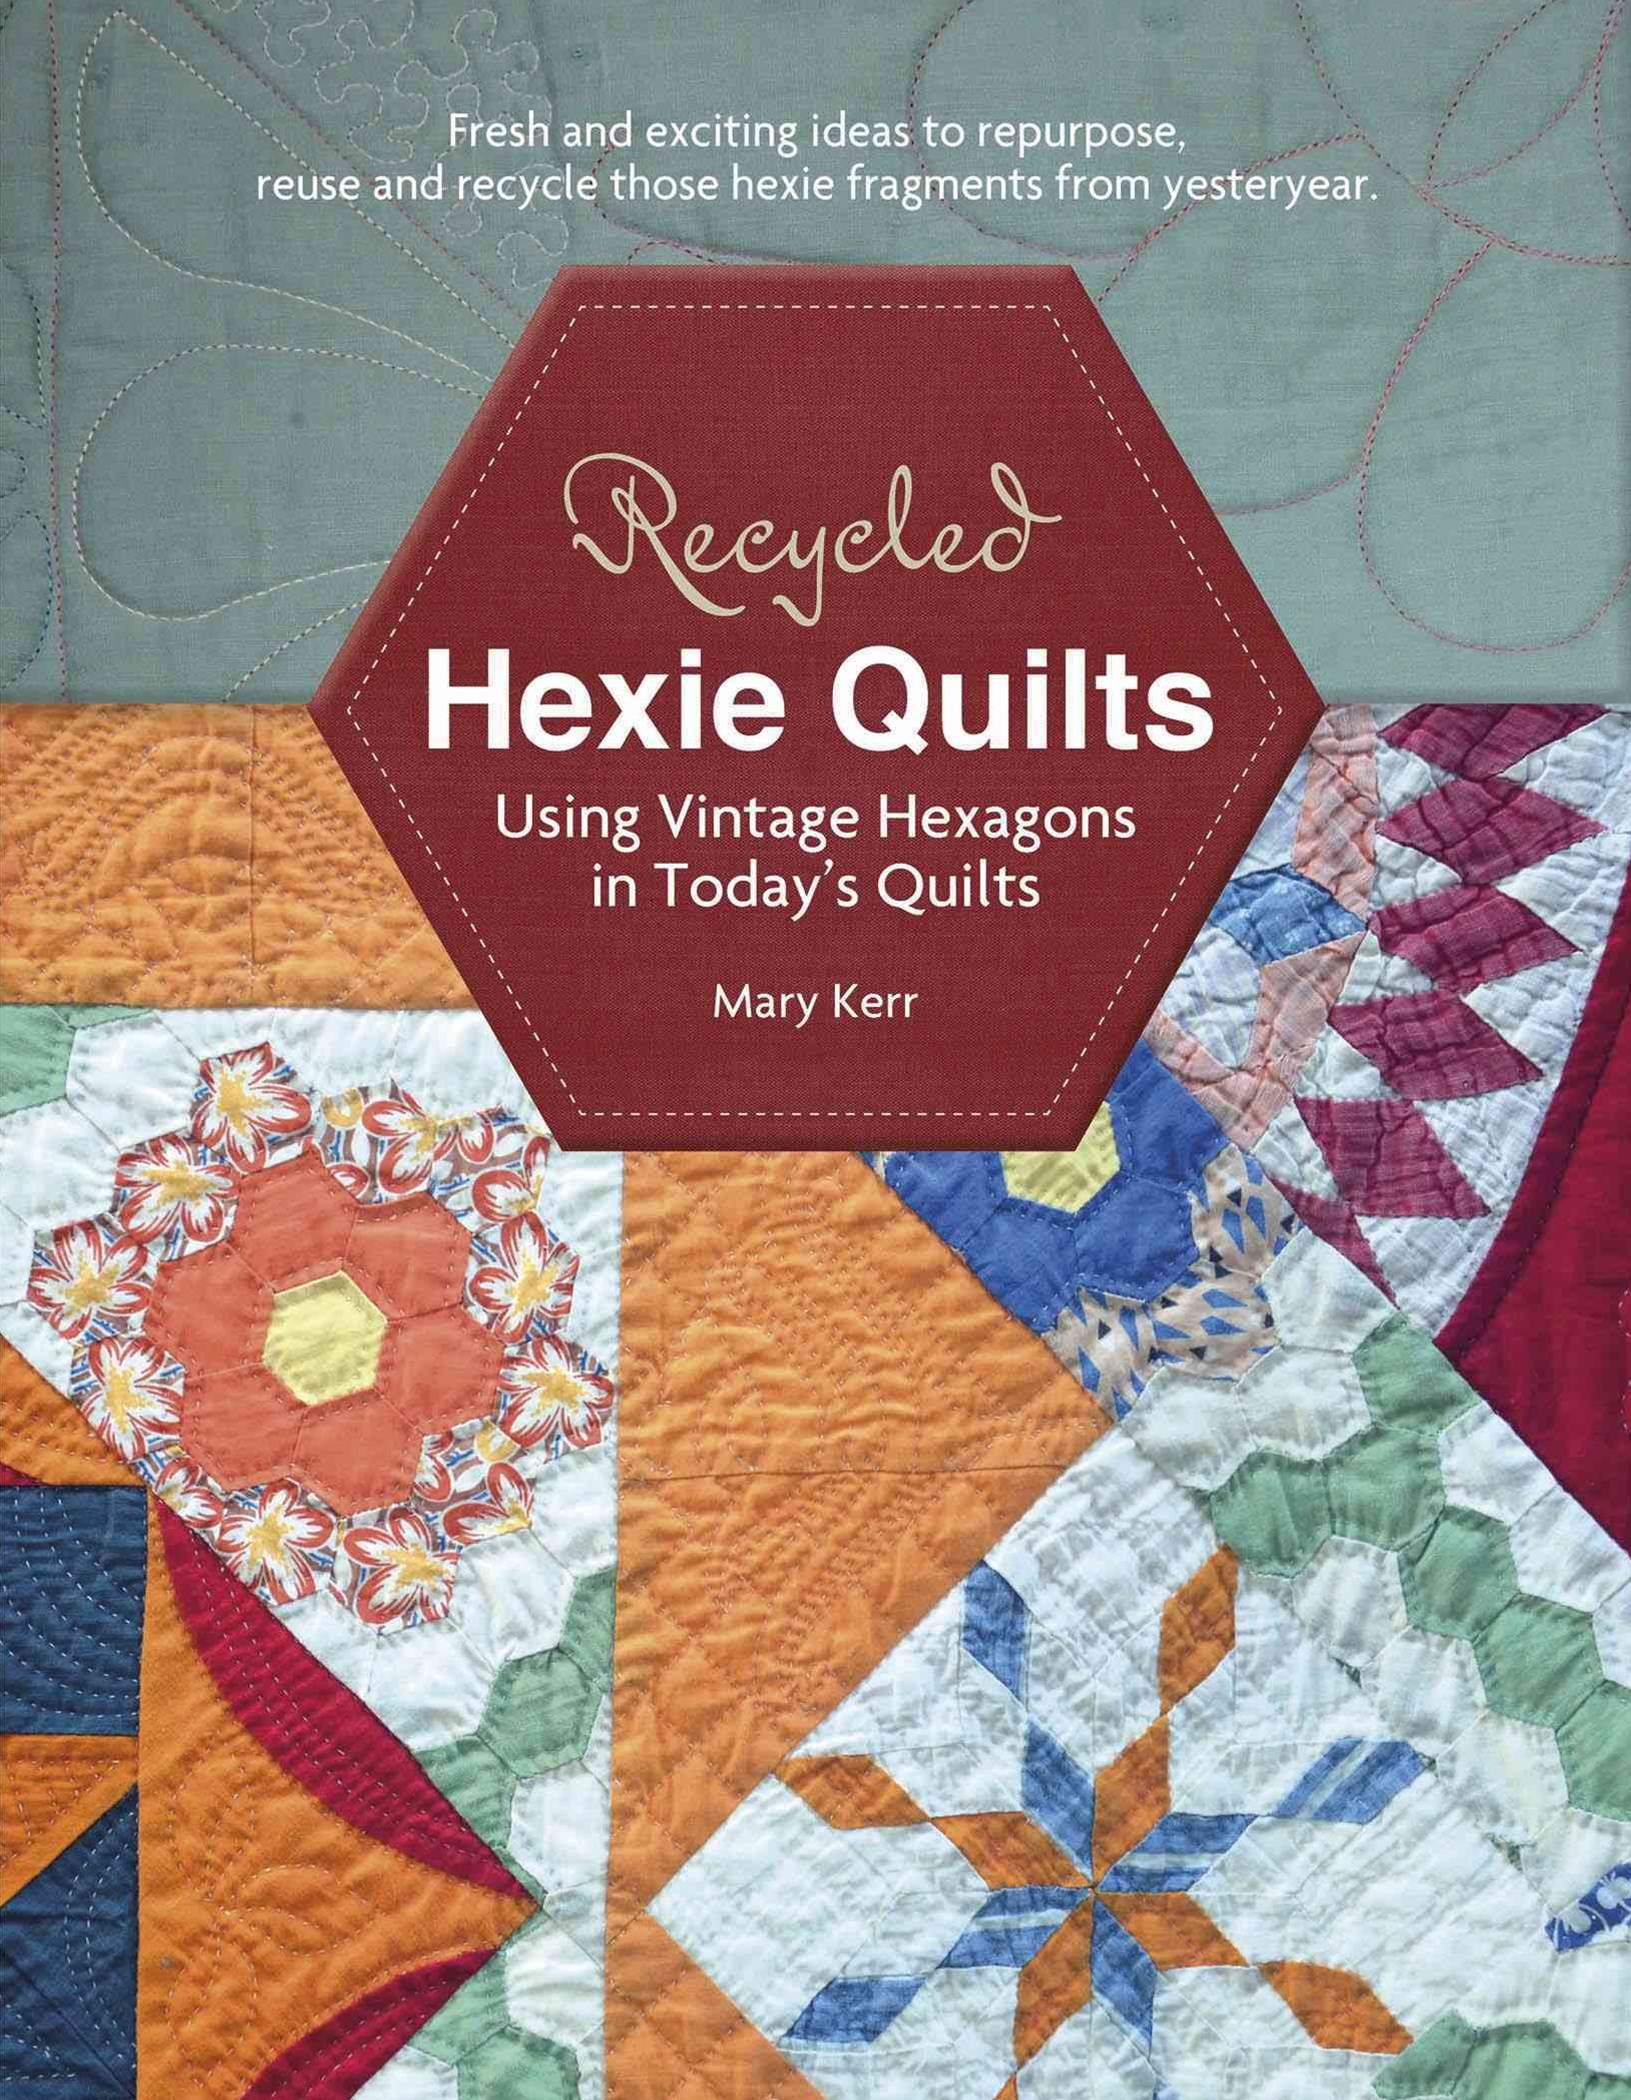 Recycled Hexie Quilts